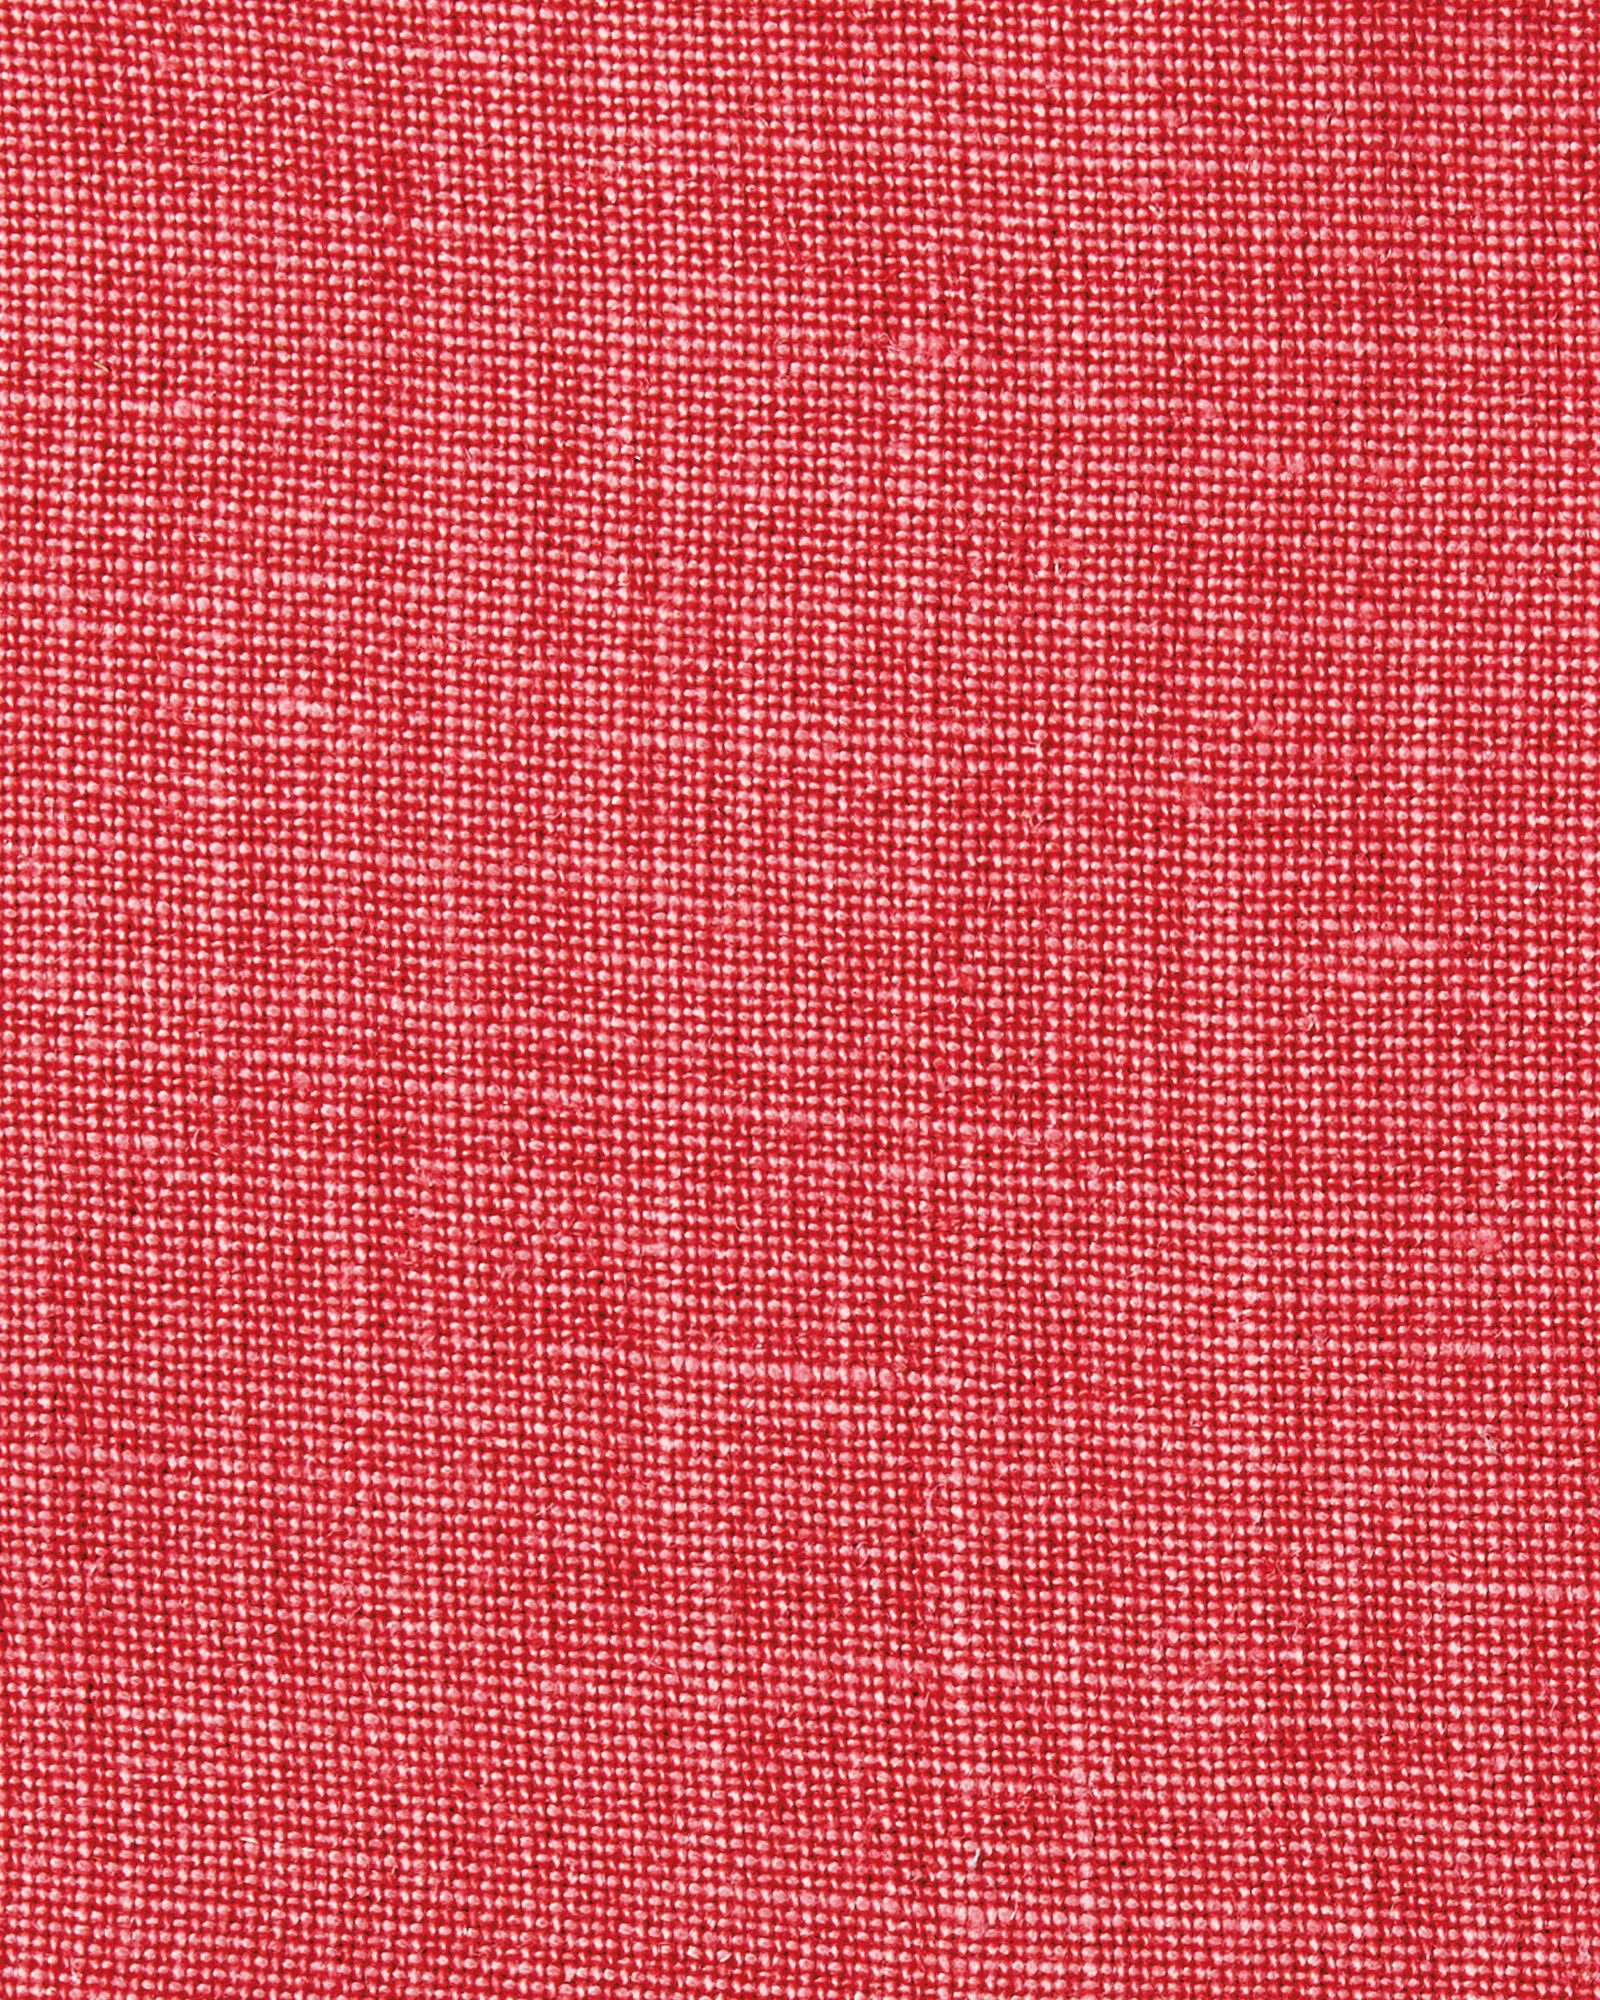 Washed Linen Fabric, Red